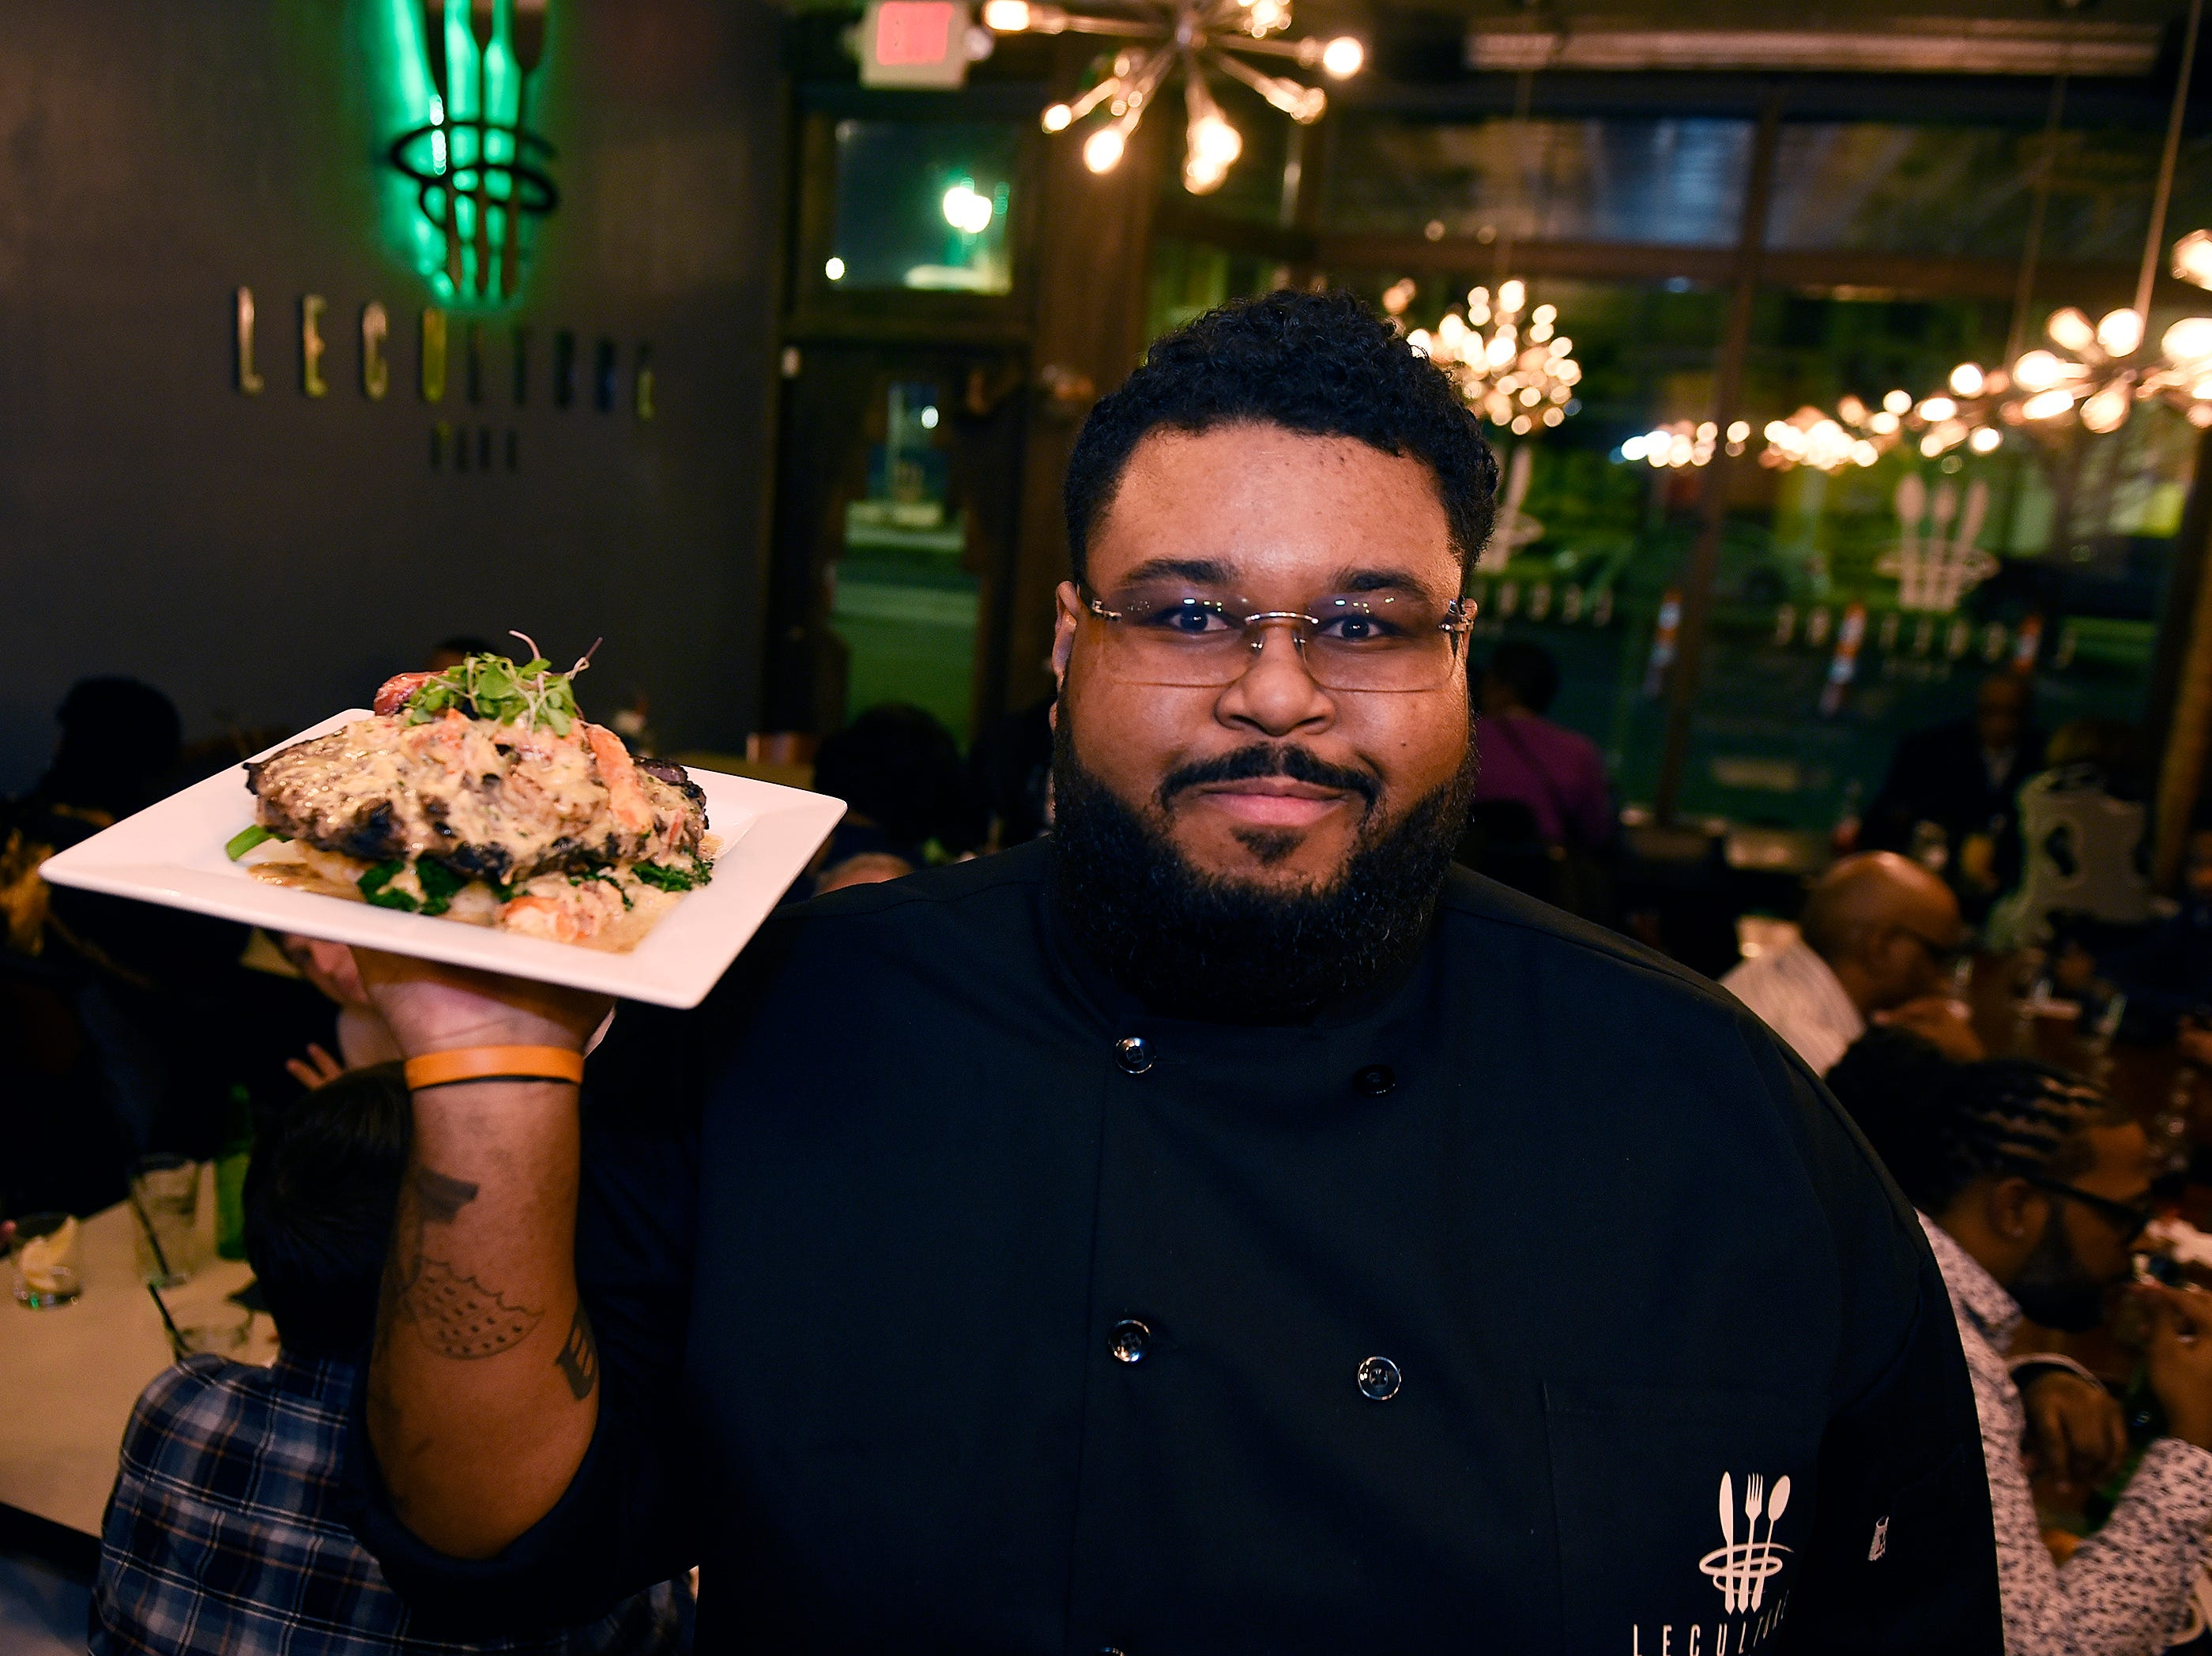 Drew Matthews, owner and executive chef of Le  Culture Cafe holds a plate of the Oscar de Le' Culture (20 ounce Angus ribeye with broccolini, jumbo lump crab, rock lobster tail and whipped mash potatoes) in the main dining area.